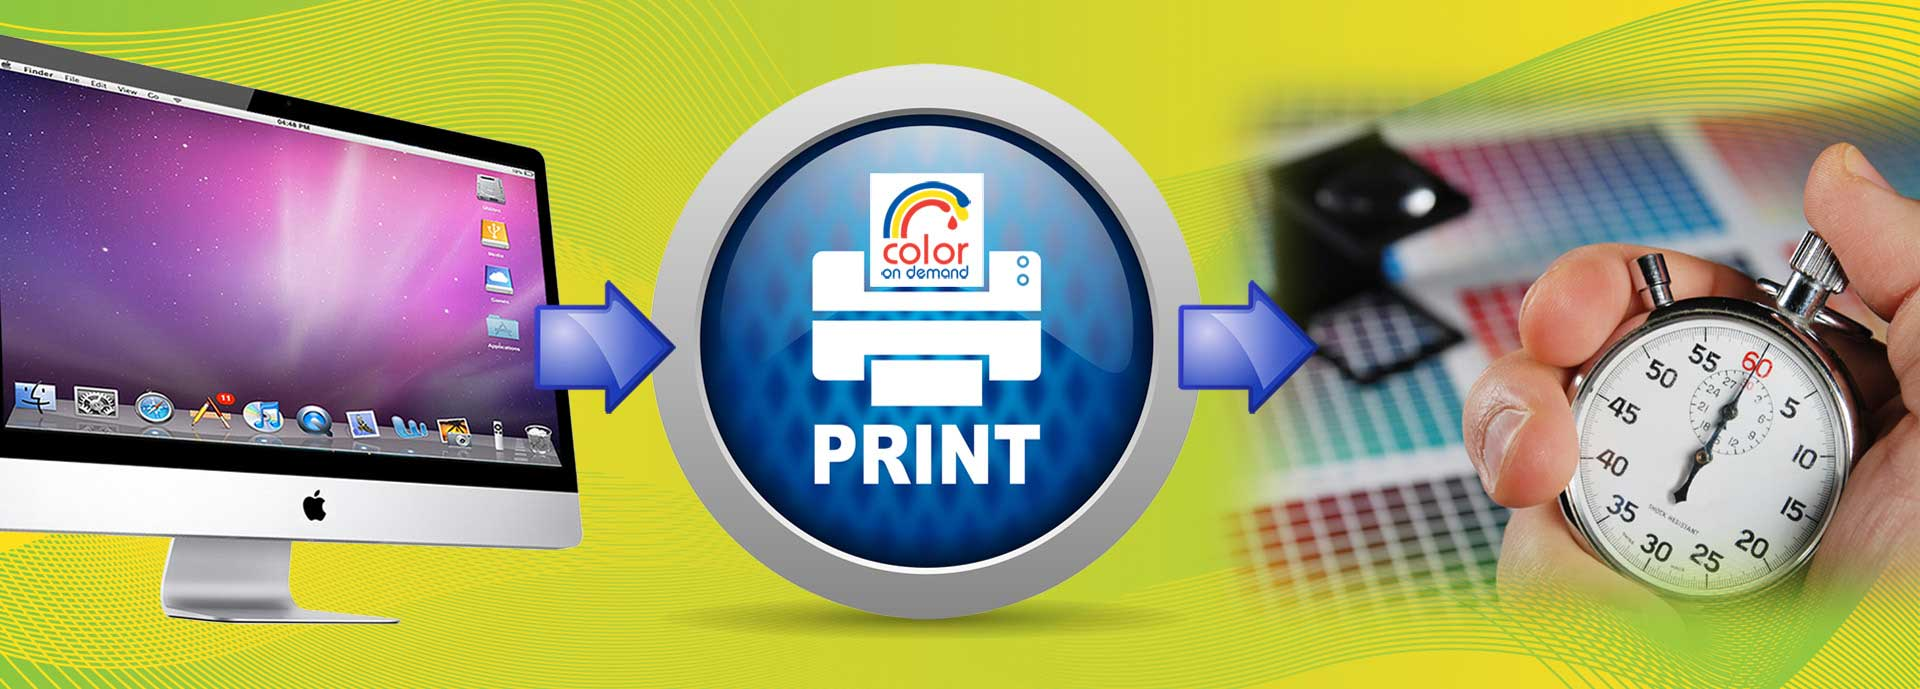 At Color on Demand the print possibilities are endless!